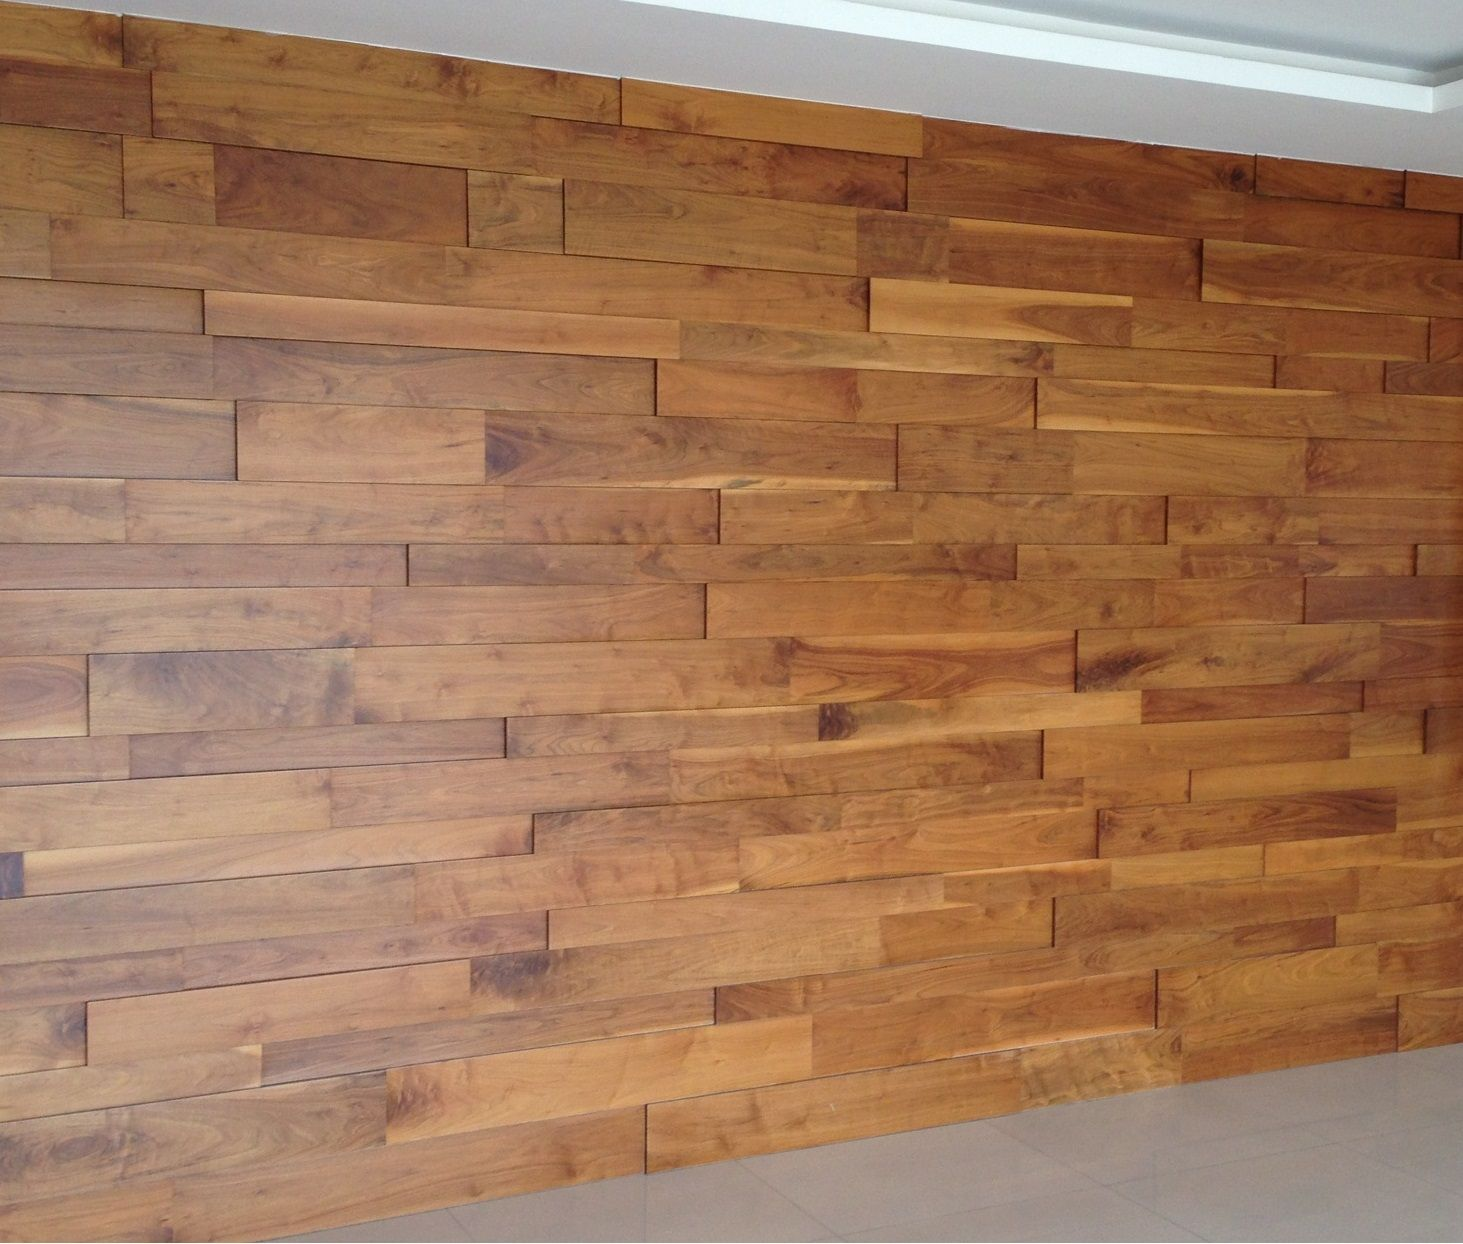 Wooden Wall Covering Here Is A Followup To My Post A Few Weeks Ago About Wood Wall .